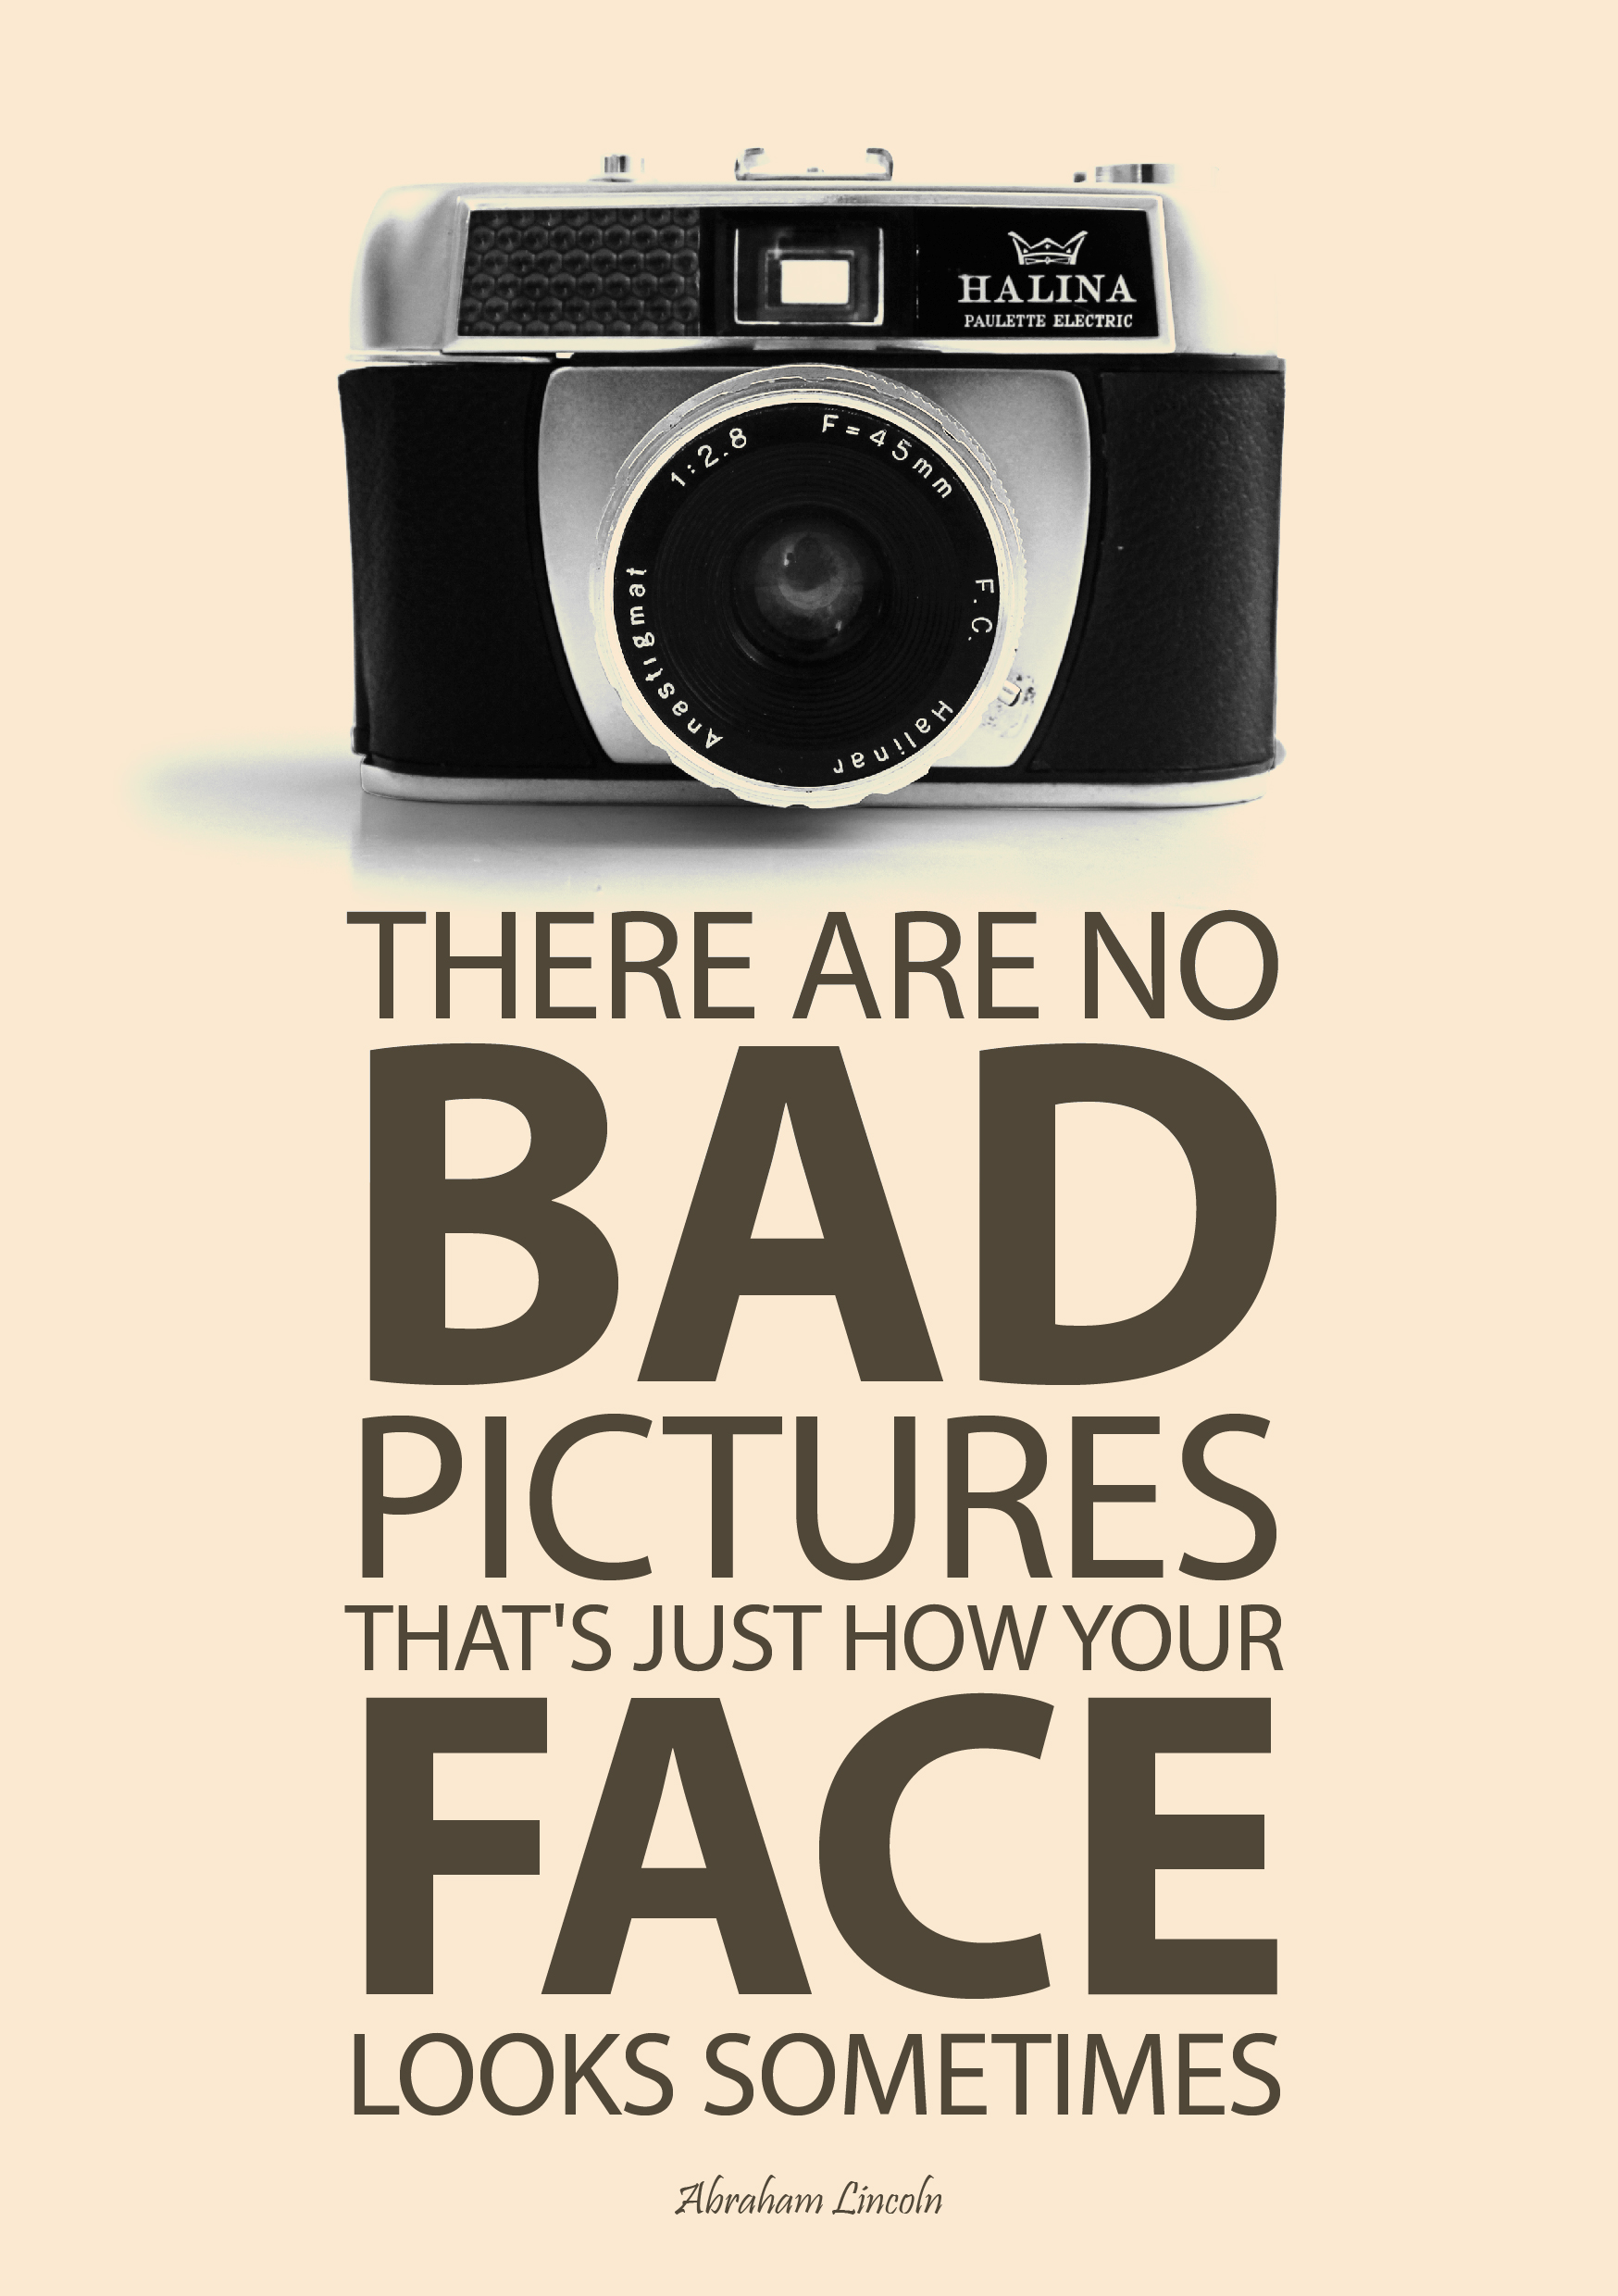 A Good Quote To Stand By Retro Camera Uk